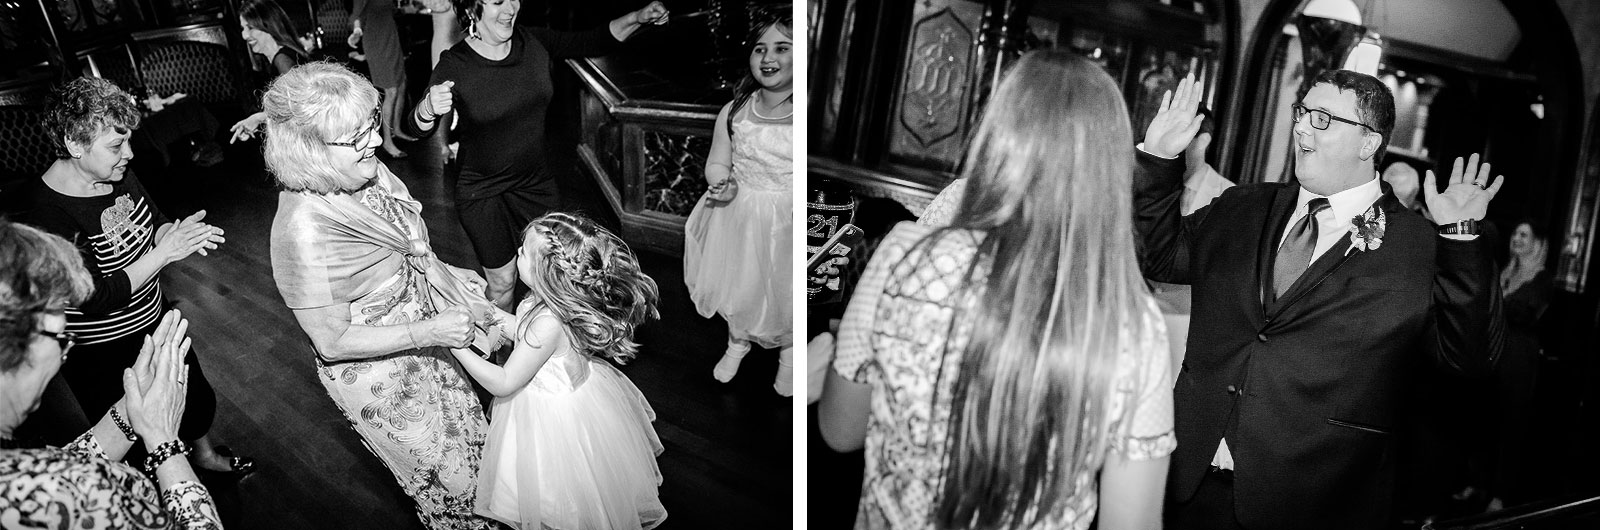 Eric_and_Christy_Photography_Blog_Wedding_Karen_Nick-52-53